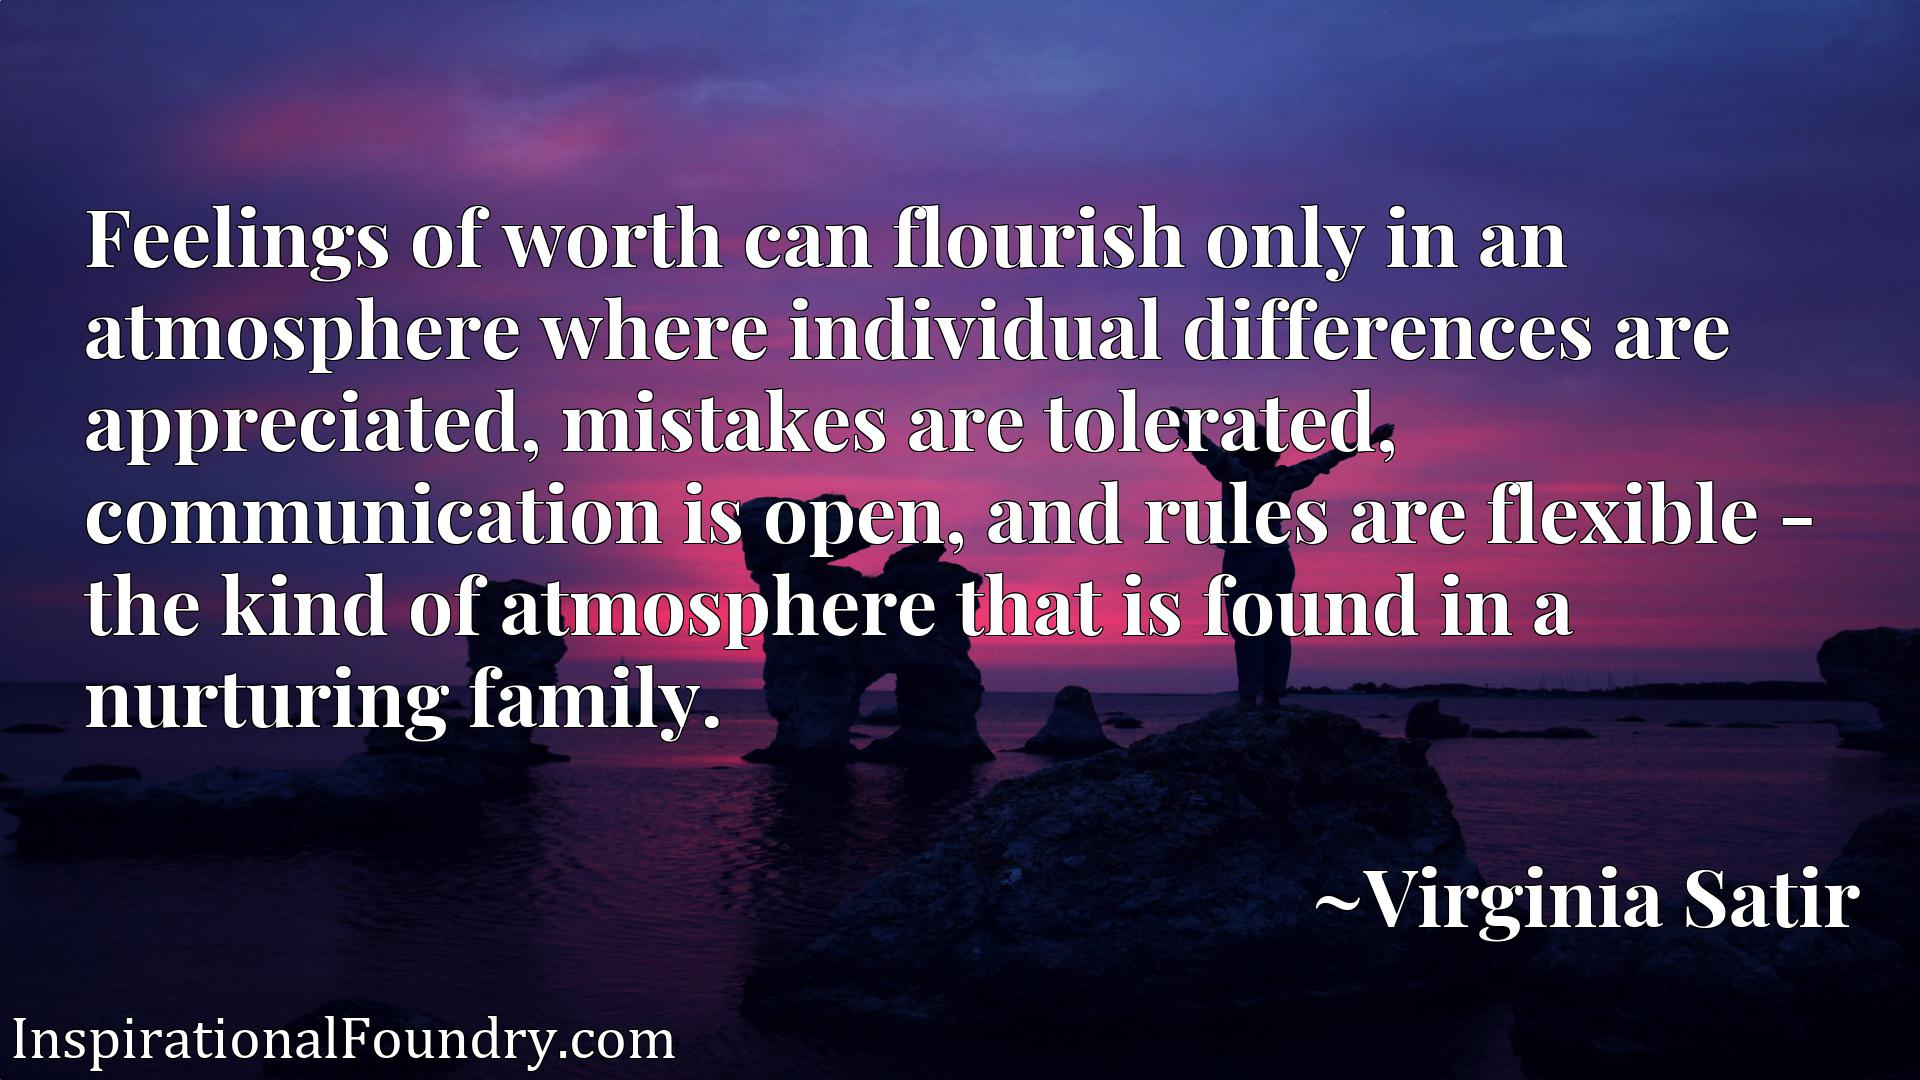 Feelings of worth can flourish only in an atmosphere where individual differences are appreciated, mistakes are tolerated, communication is open, and rules are flexible - the kind of atmosphere that is found in a nurturing family.